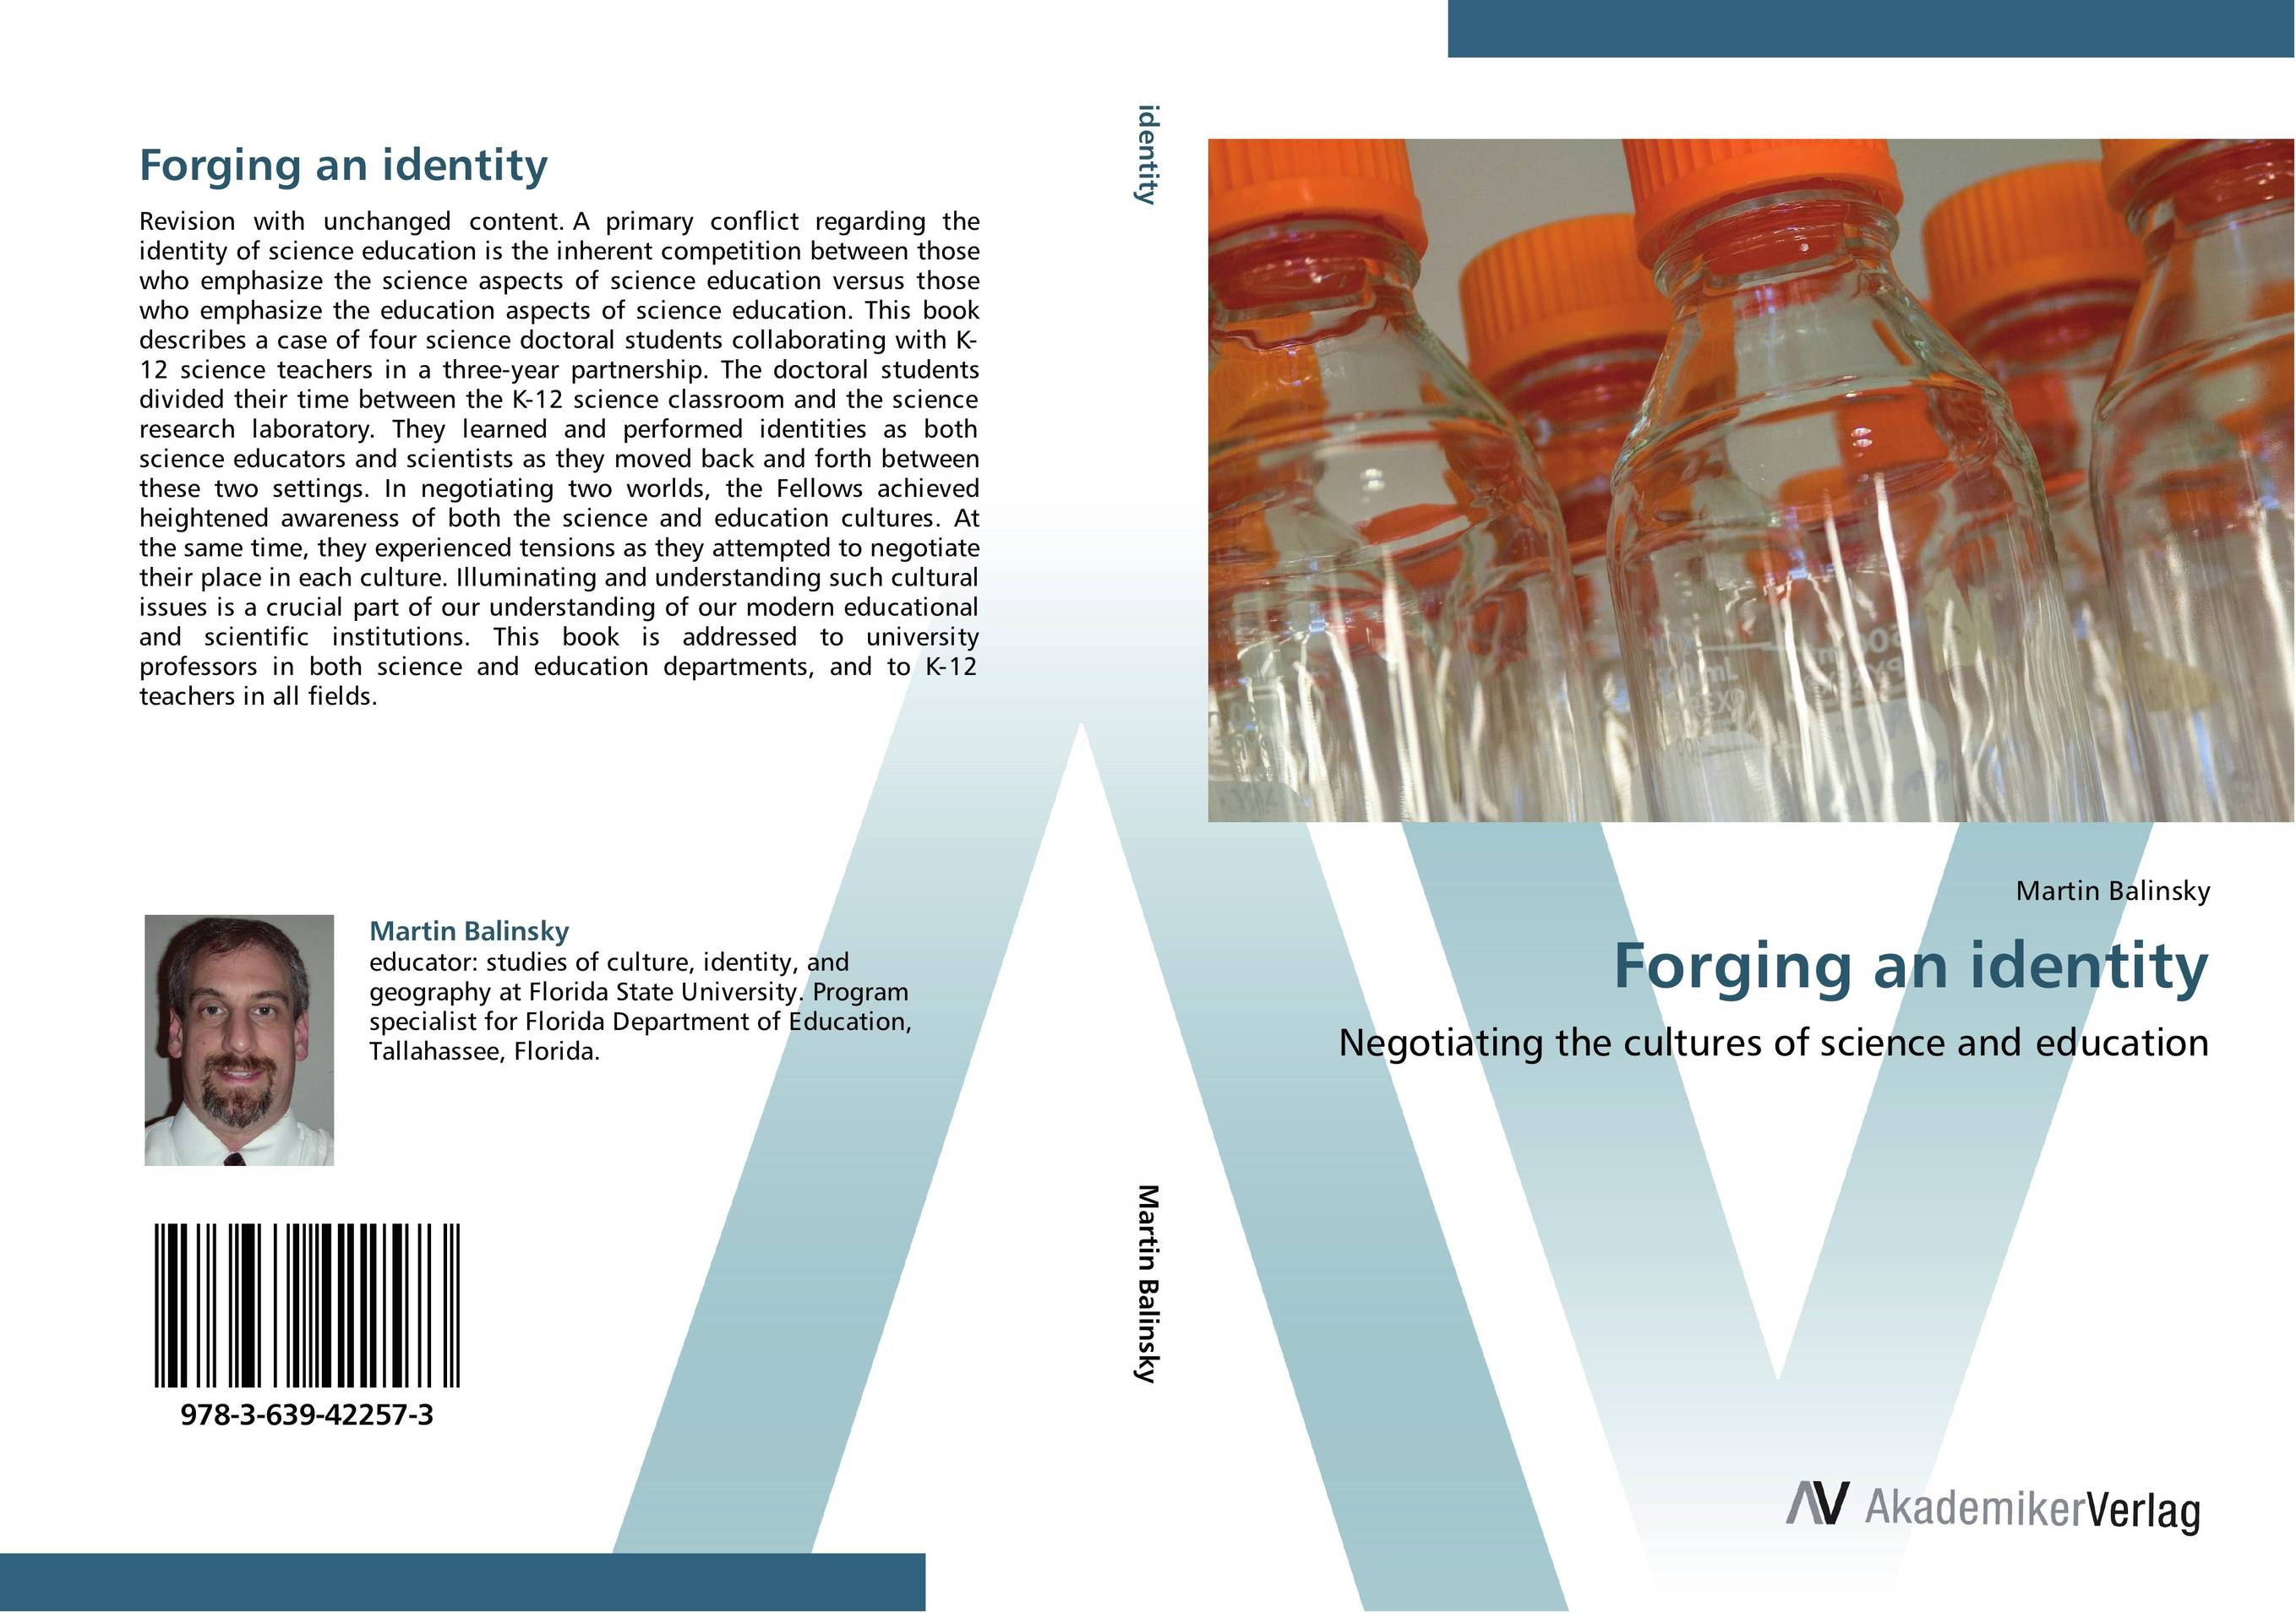 Forging an identity gray underserved populations in science education